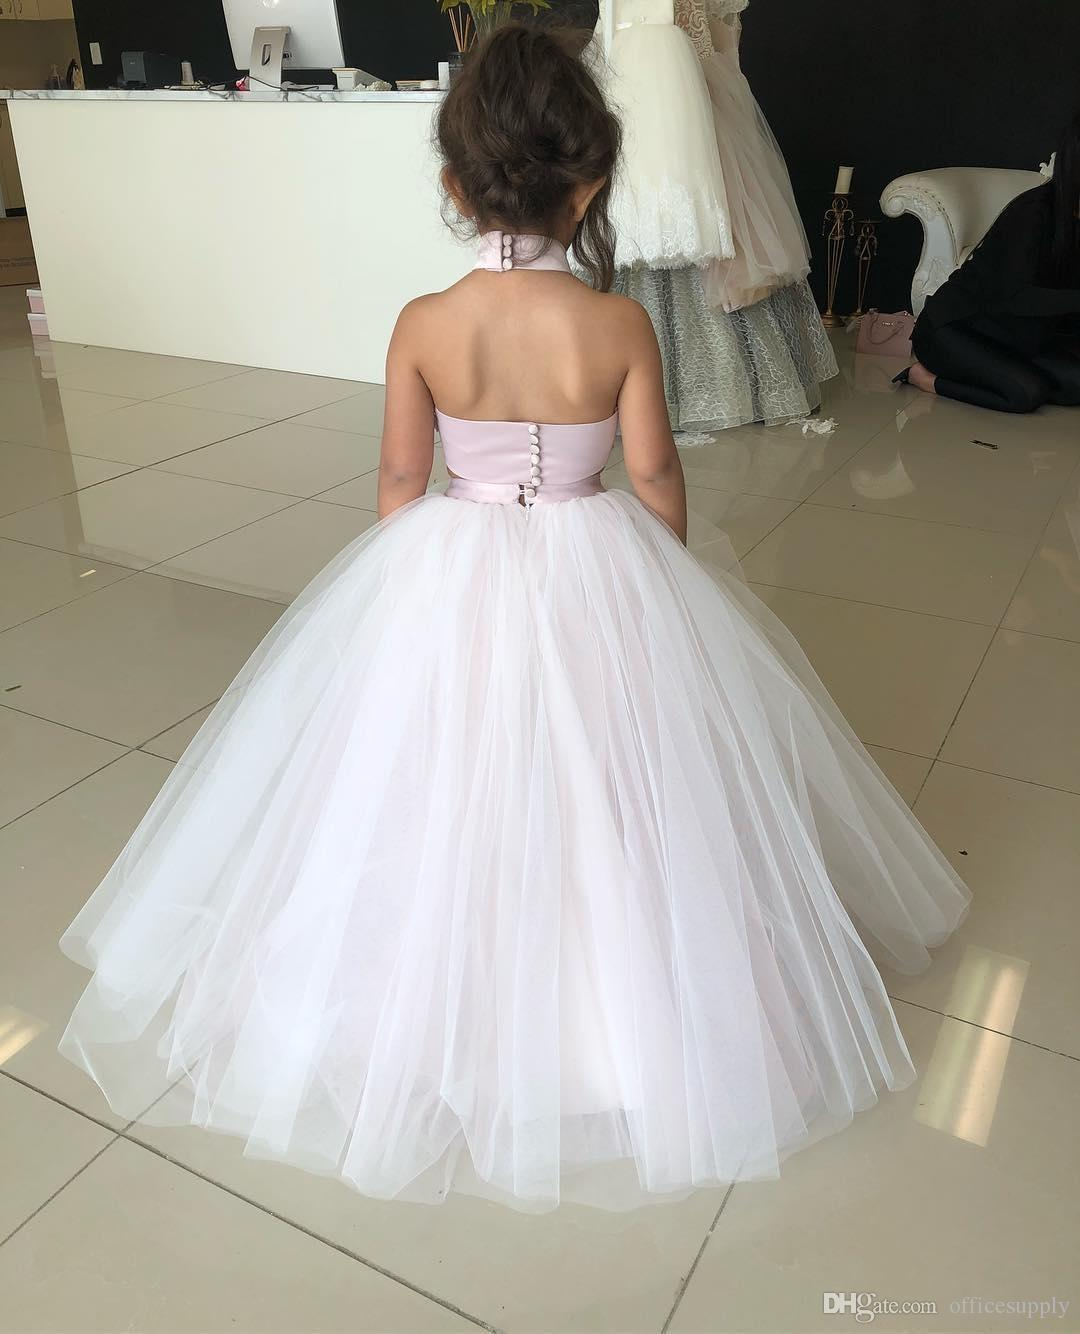 2018 Junior Kids Two Pieces Flower Girl Dresses Princess A Line Halter Neck Backless Girls Toddler Formal Party Wear Gowns Birthday Pageant